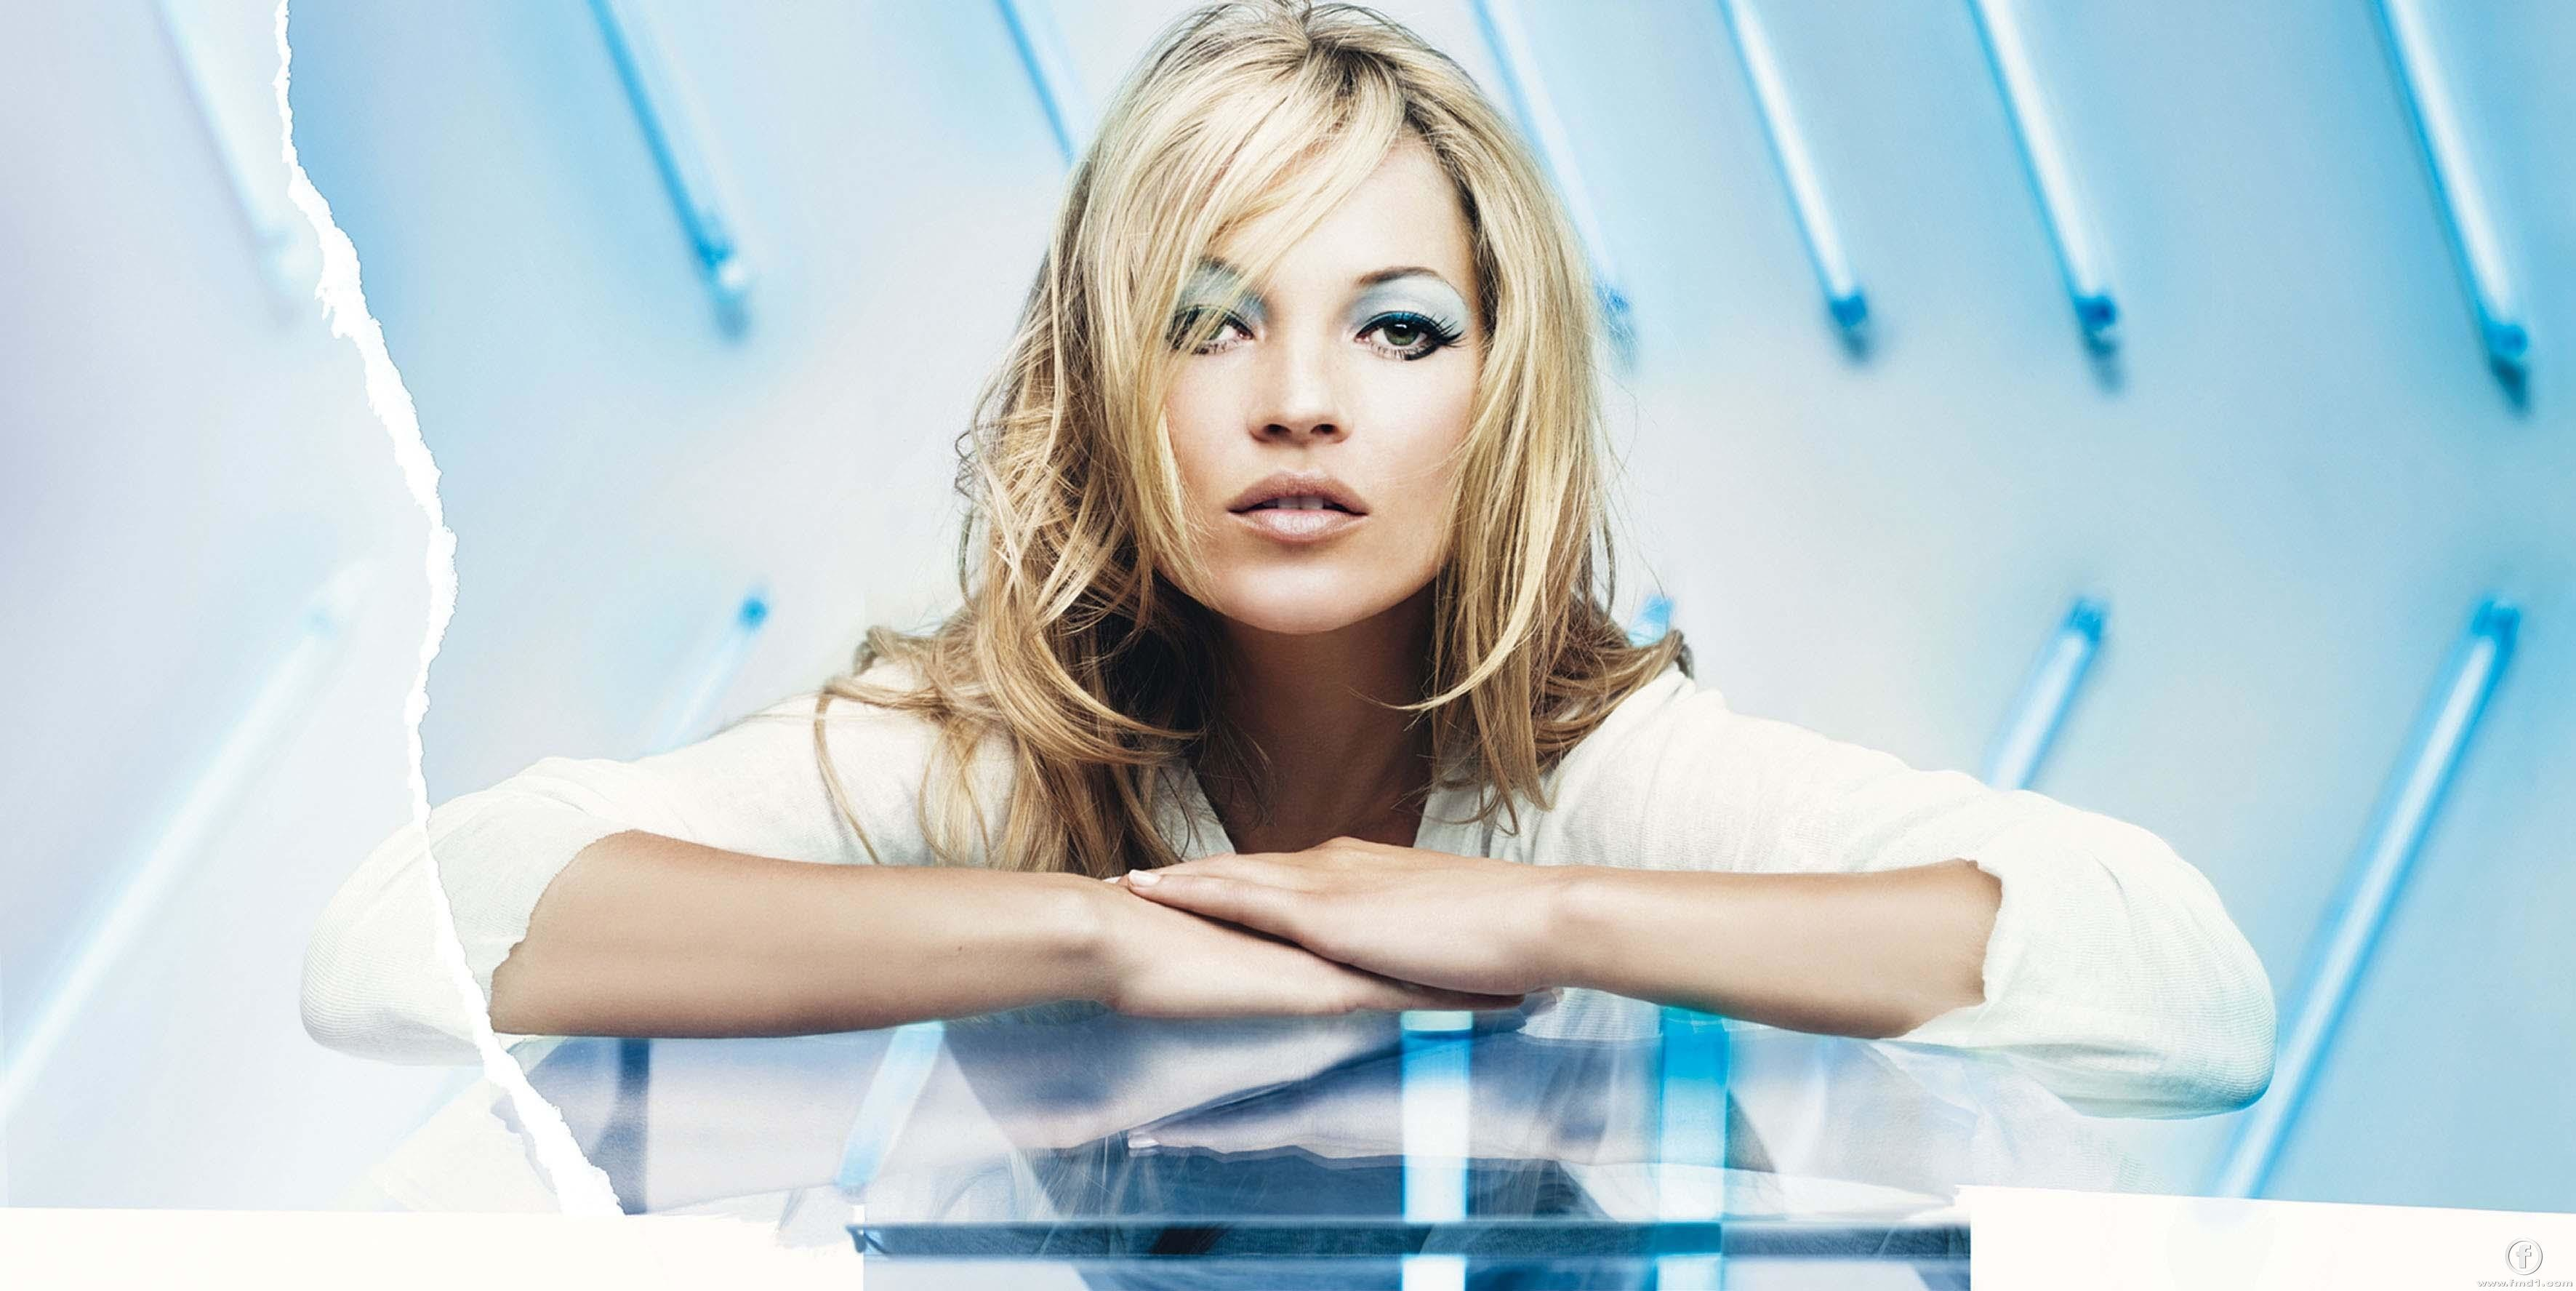 Res: 3543x1775, Kate Moss Wallpapers